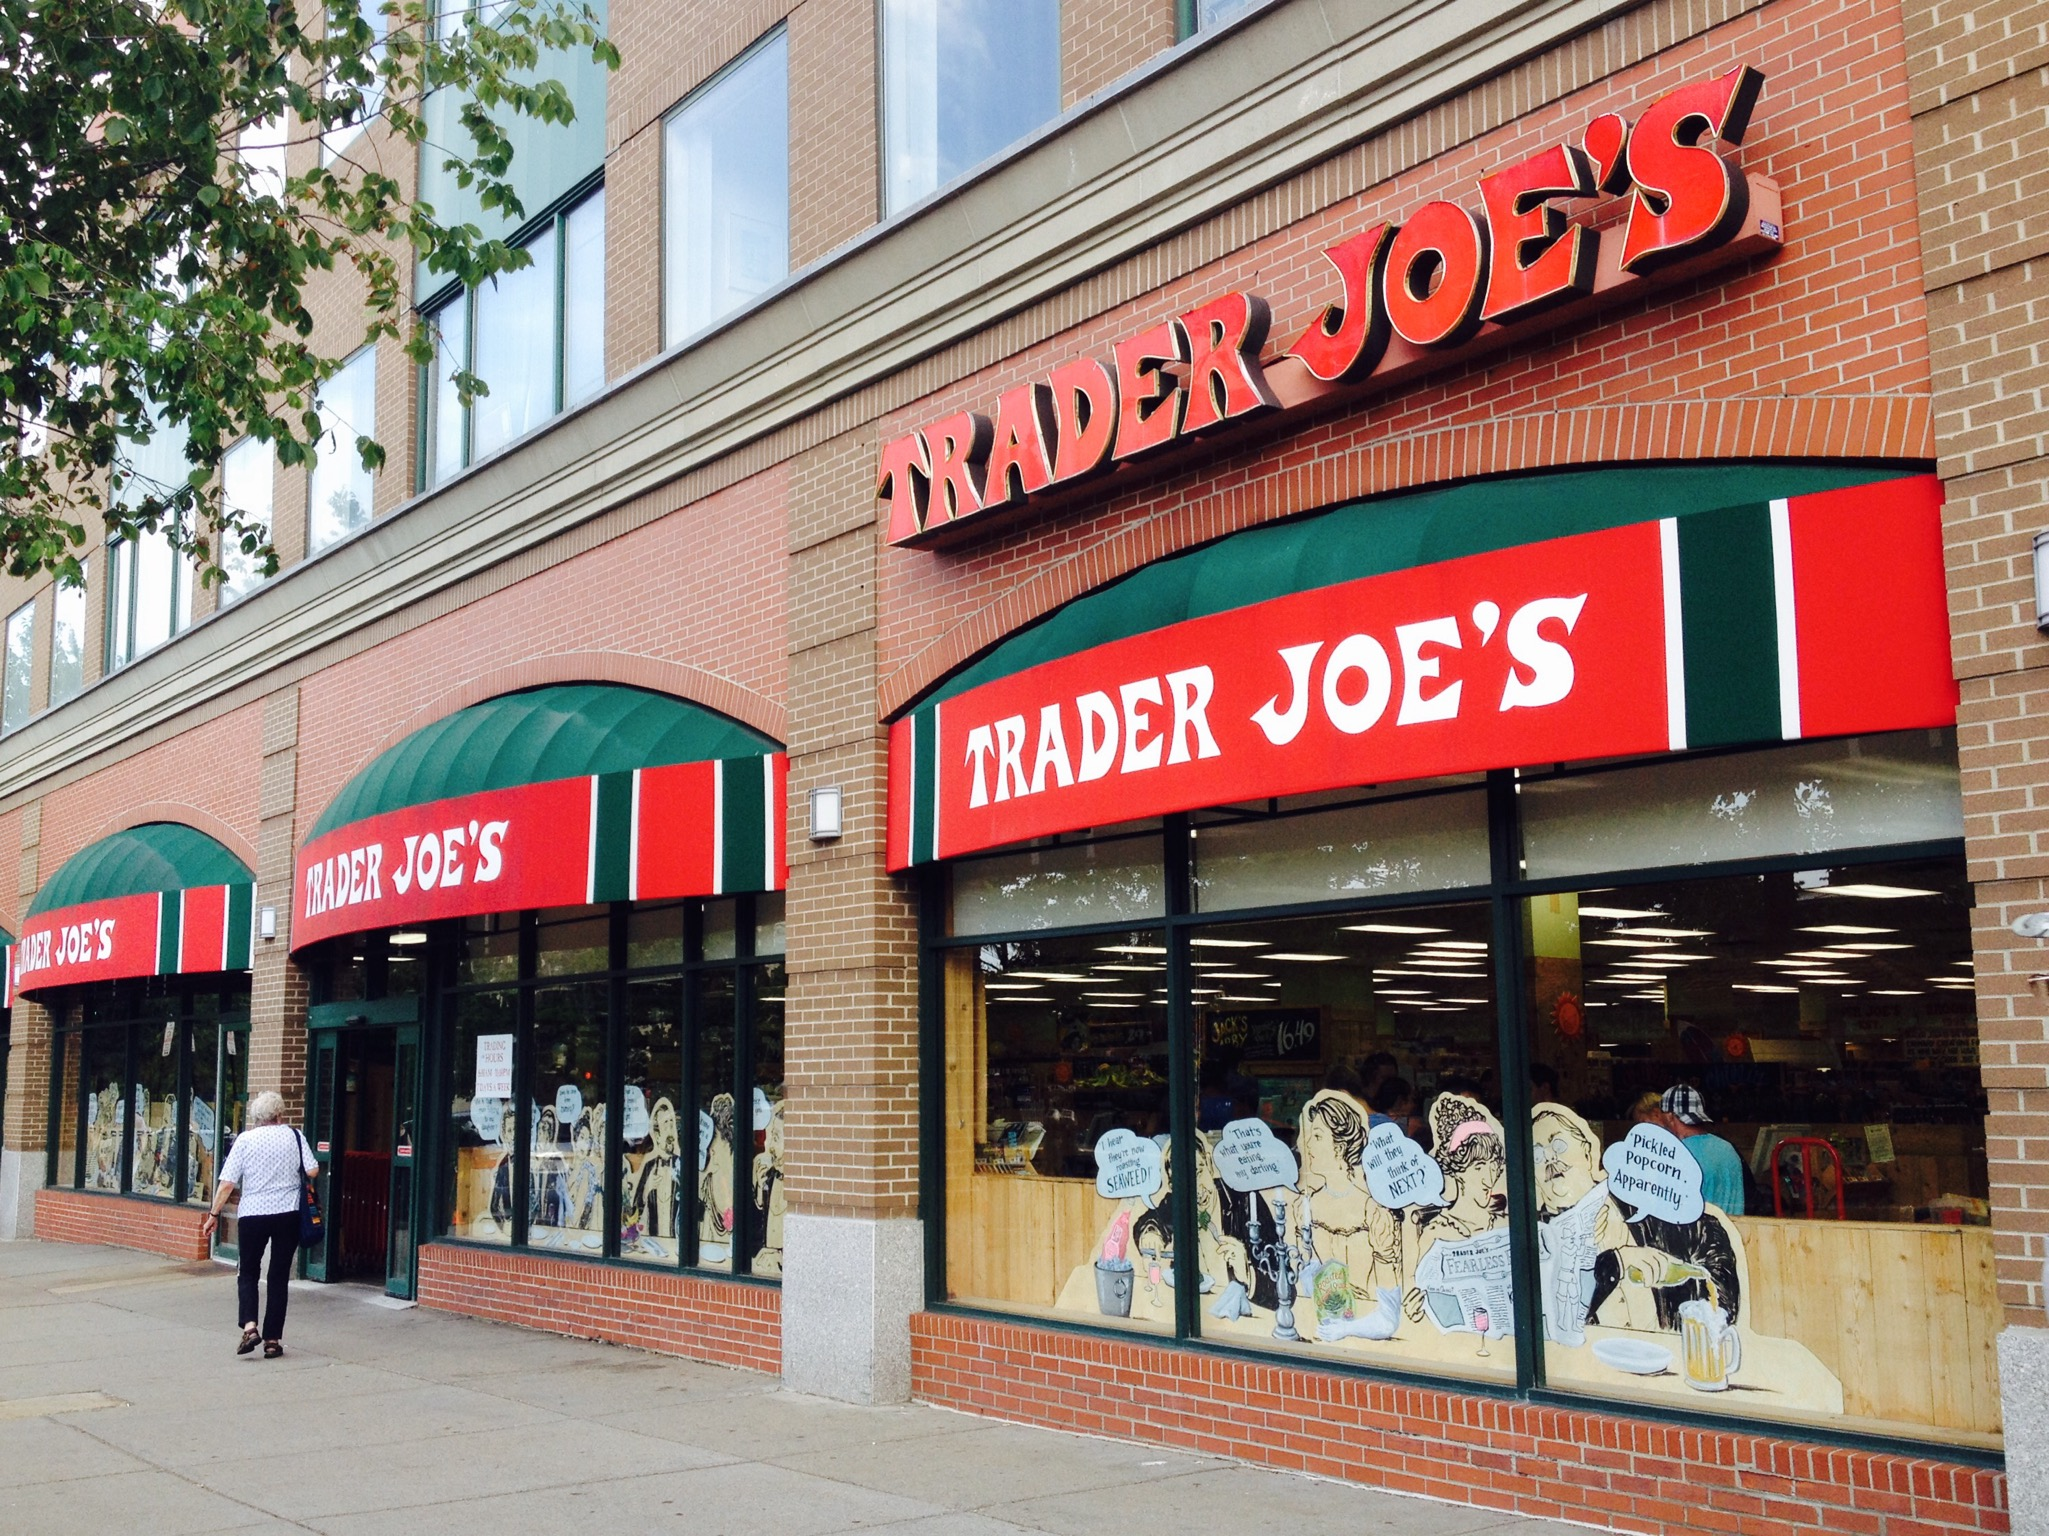 The original Trader Joe's in my book.